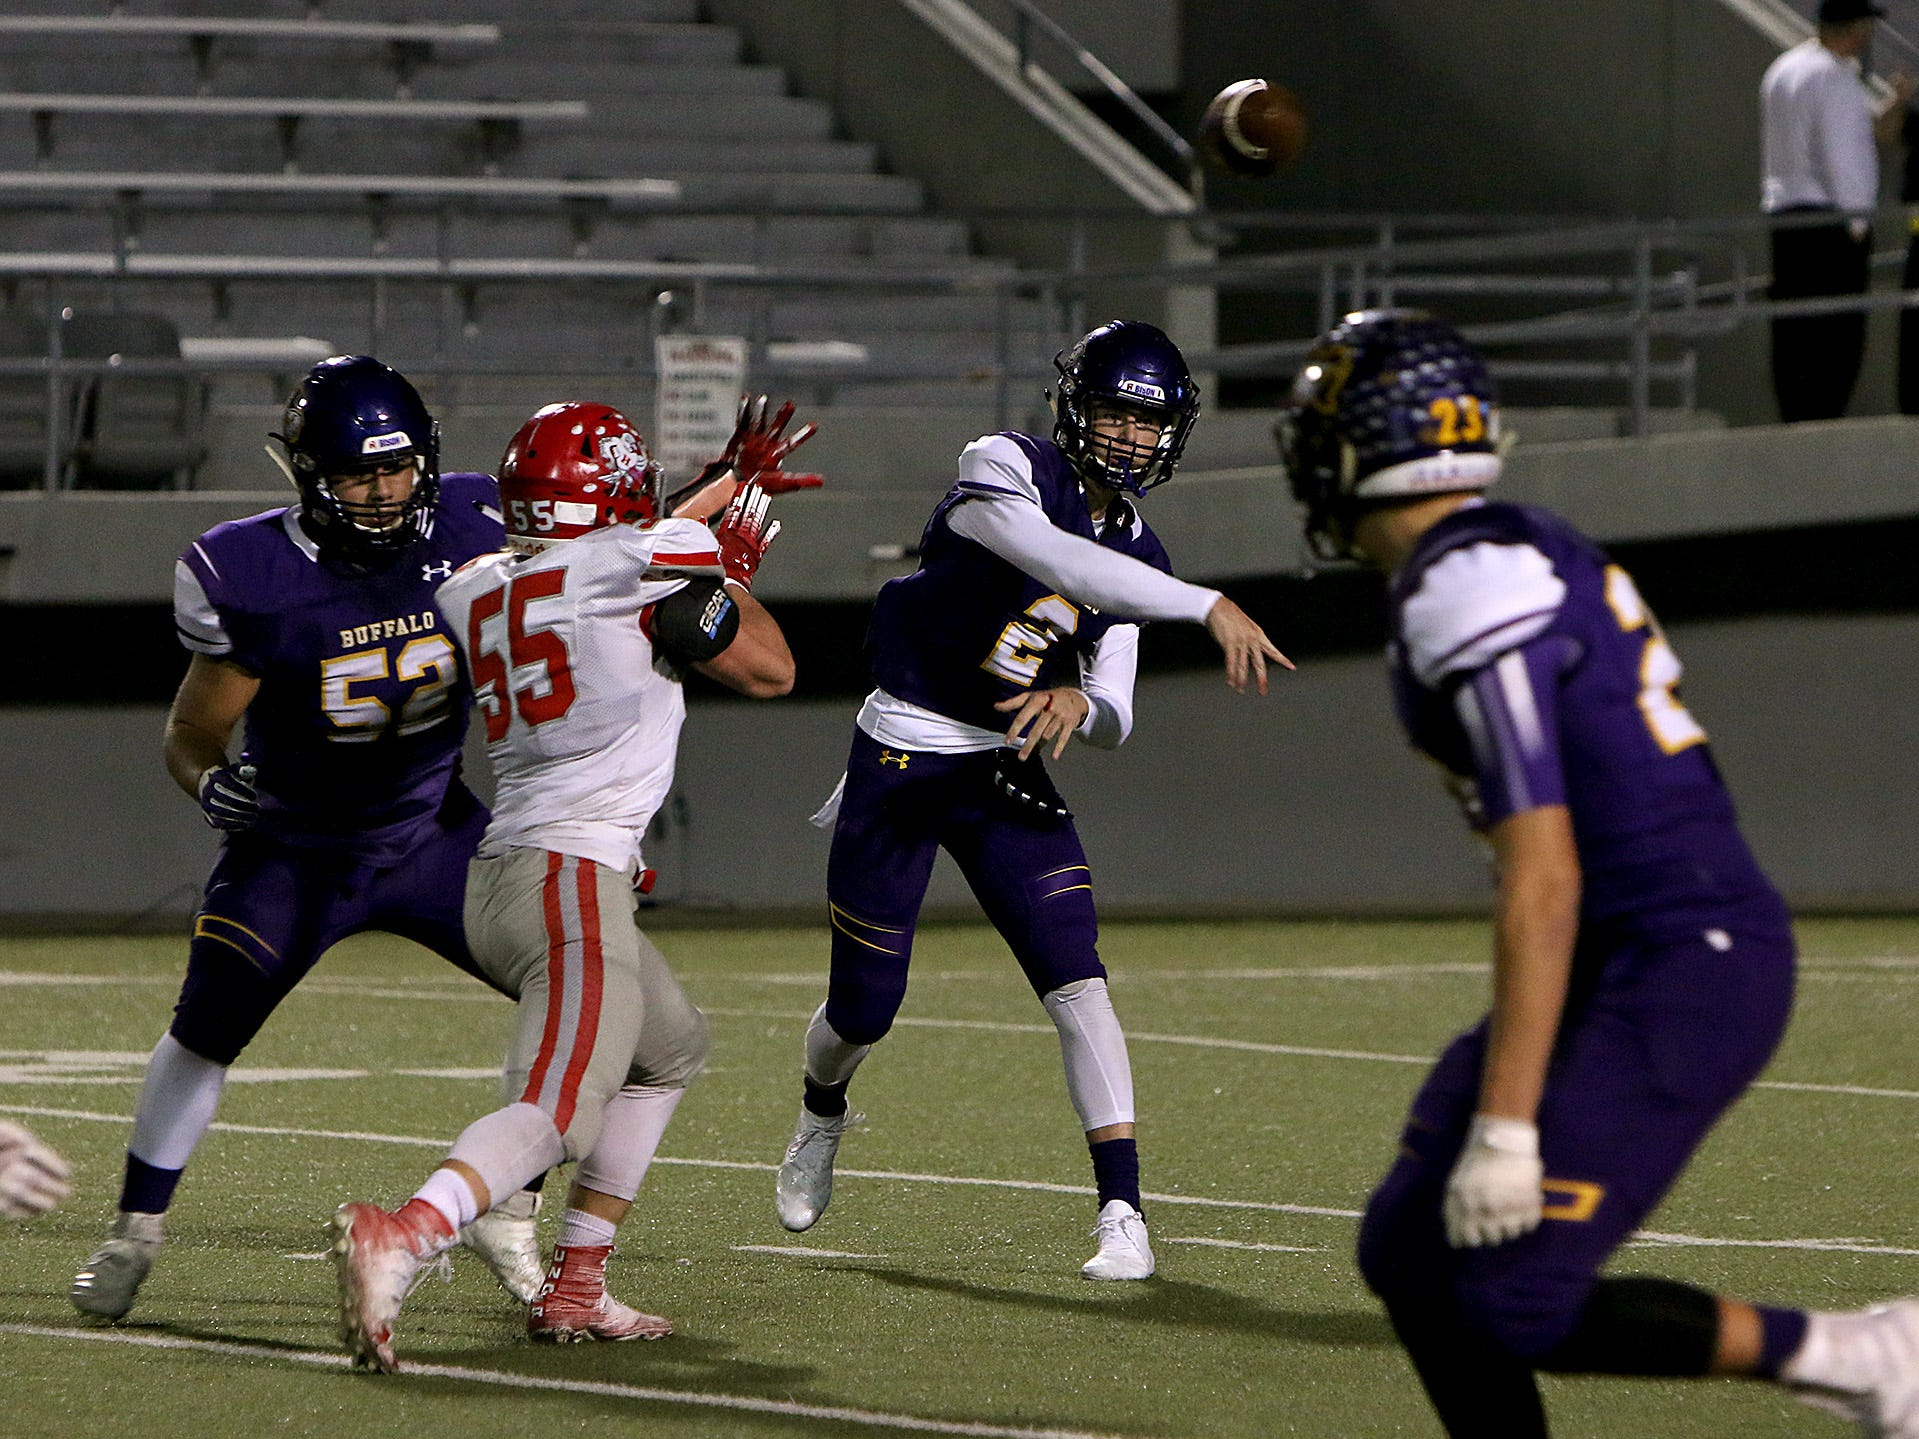 Buffalo's Colton Green (2) throws a screen pass as Holliday's Tanner Bayard (55) defends on Friday, Nov. 30, 2018, in the Region II-3A Div. II regional game at Birdville ISD Athletics Complex in North Richland Hills.